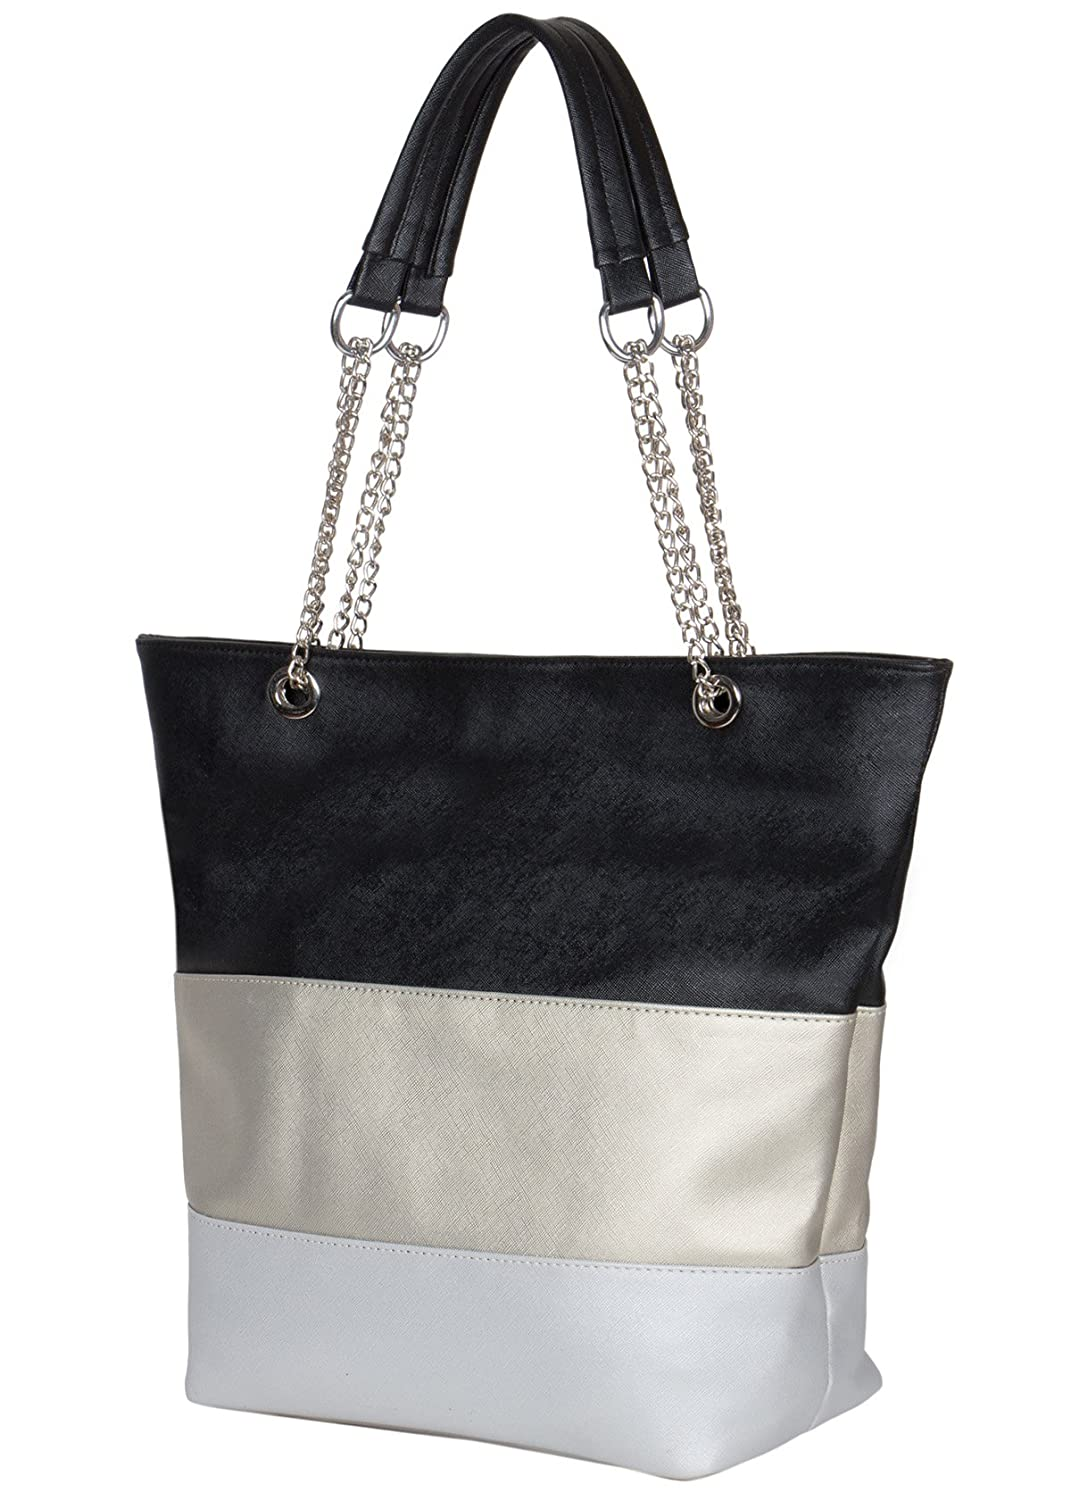 078a4f44ff27 ADISA Women's AD3016 Black Synthetic Handbag with Sling Bag Combo (One  Size): Amazon.in: Shoes & Handbags